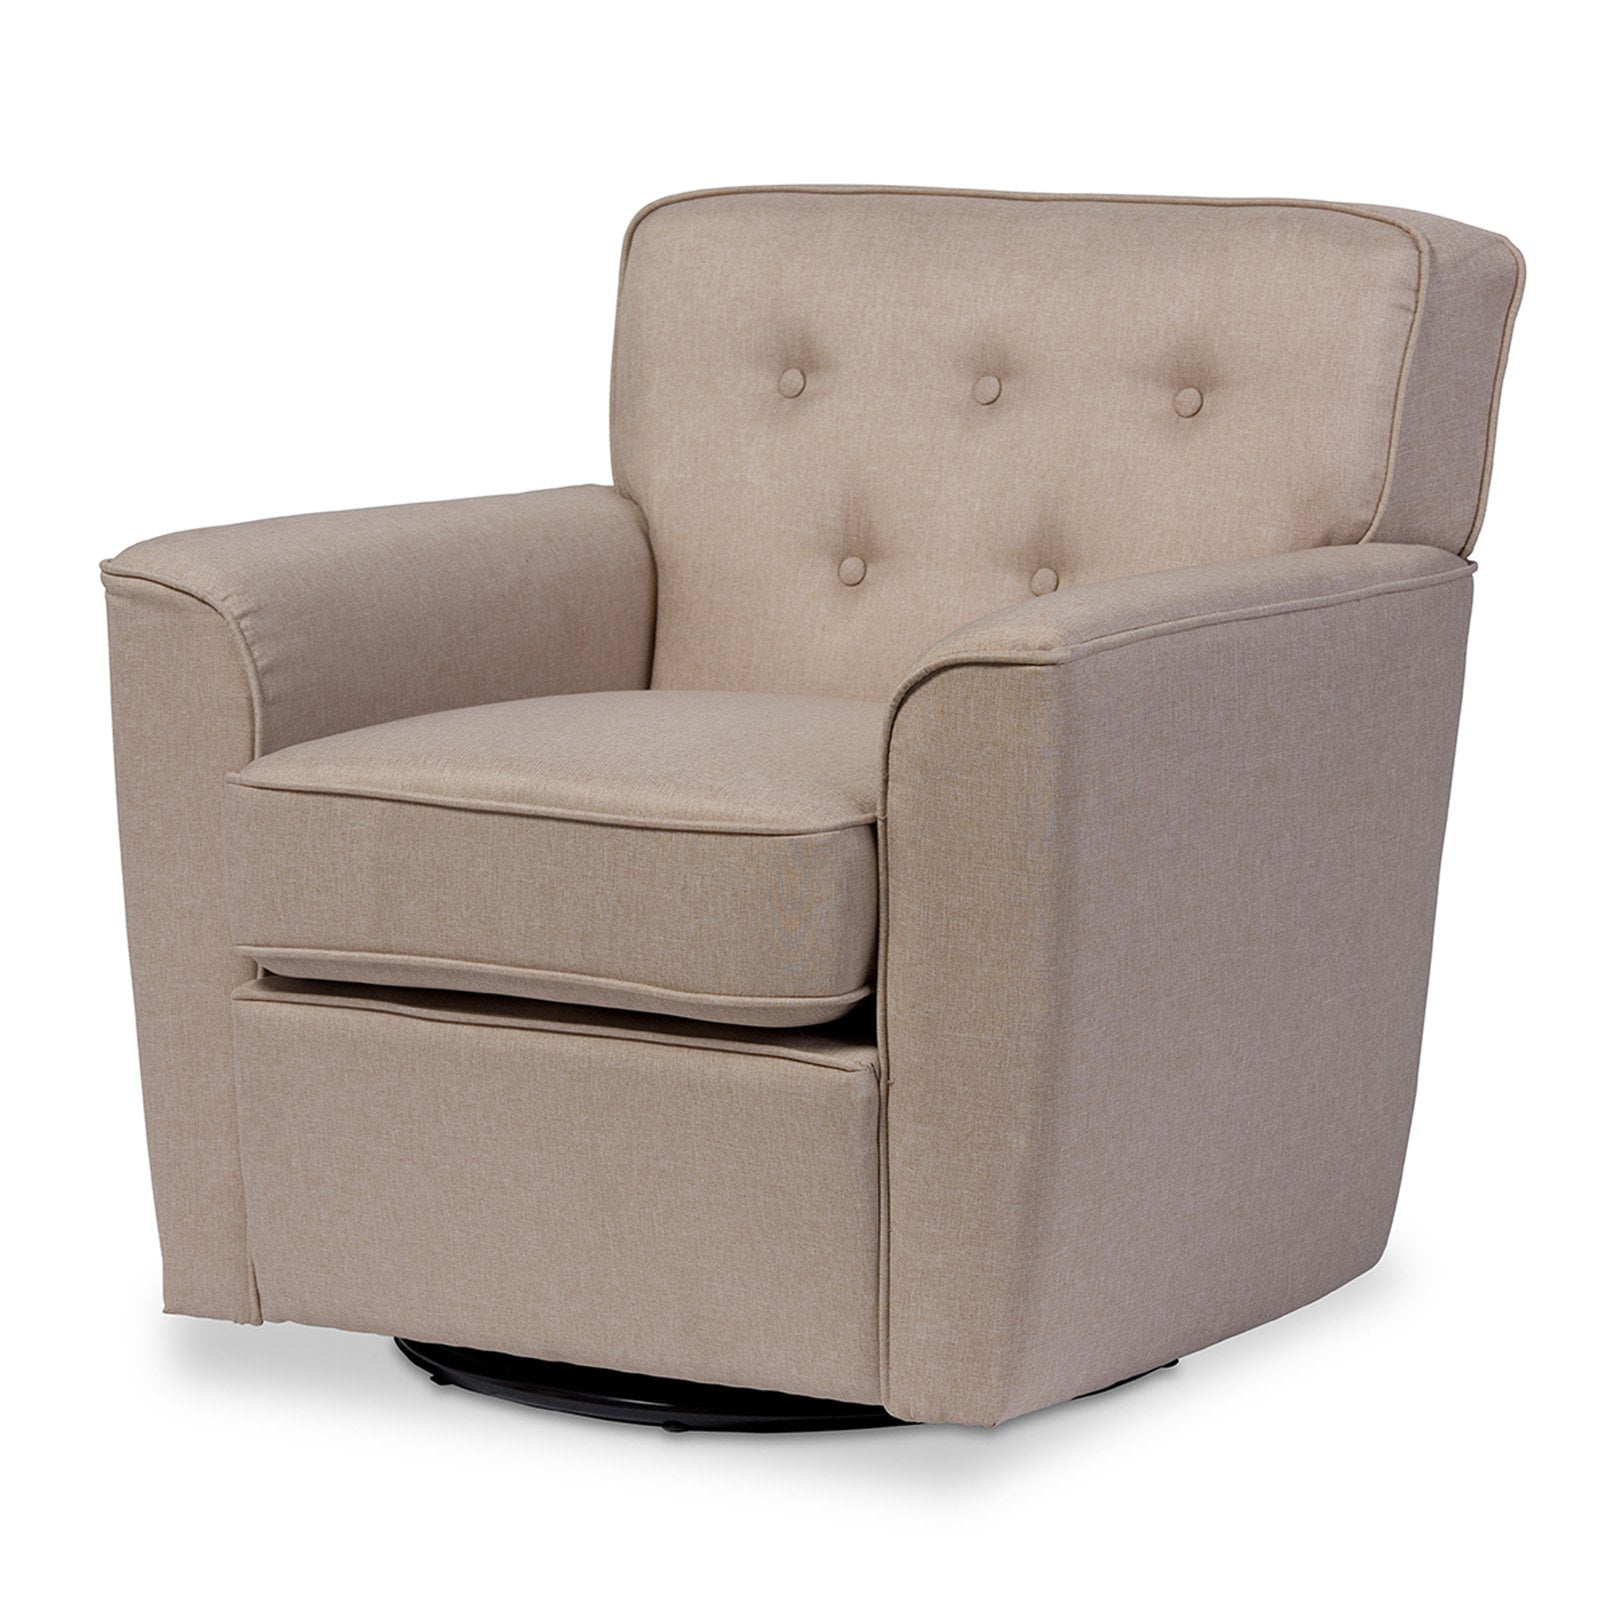 Baxton Studio Canberra Modern Retro Contemporary Beige Fabric Upholstered Button-tufted Swivel Lounge Chair with Arms by Wholesale Interiors